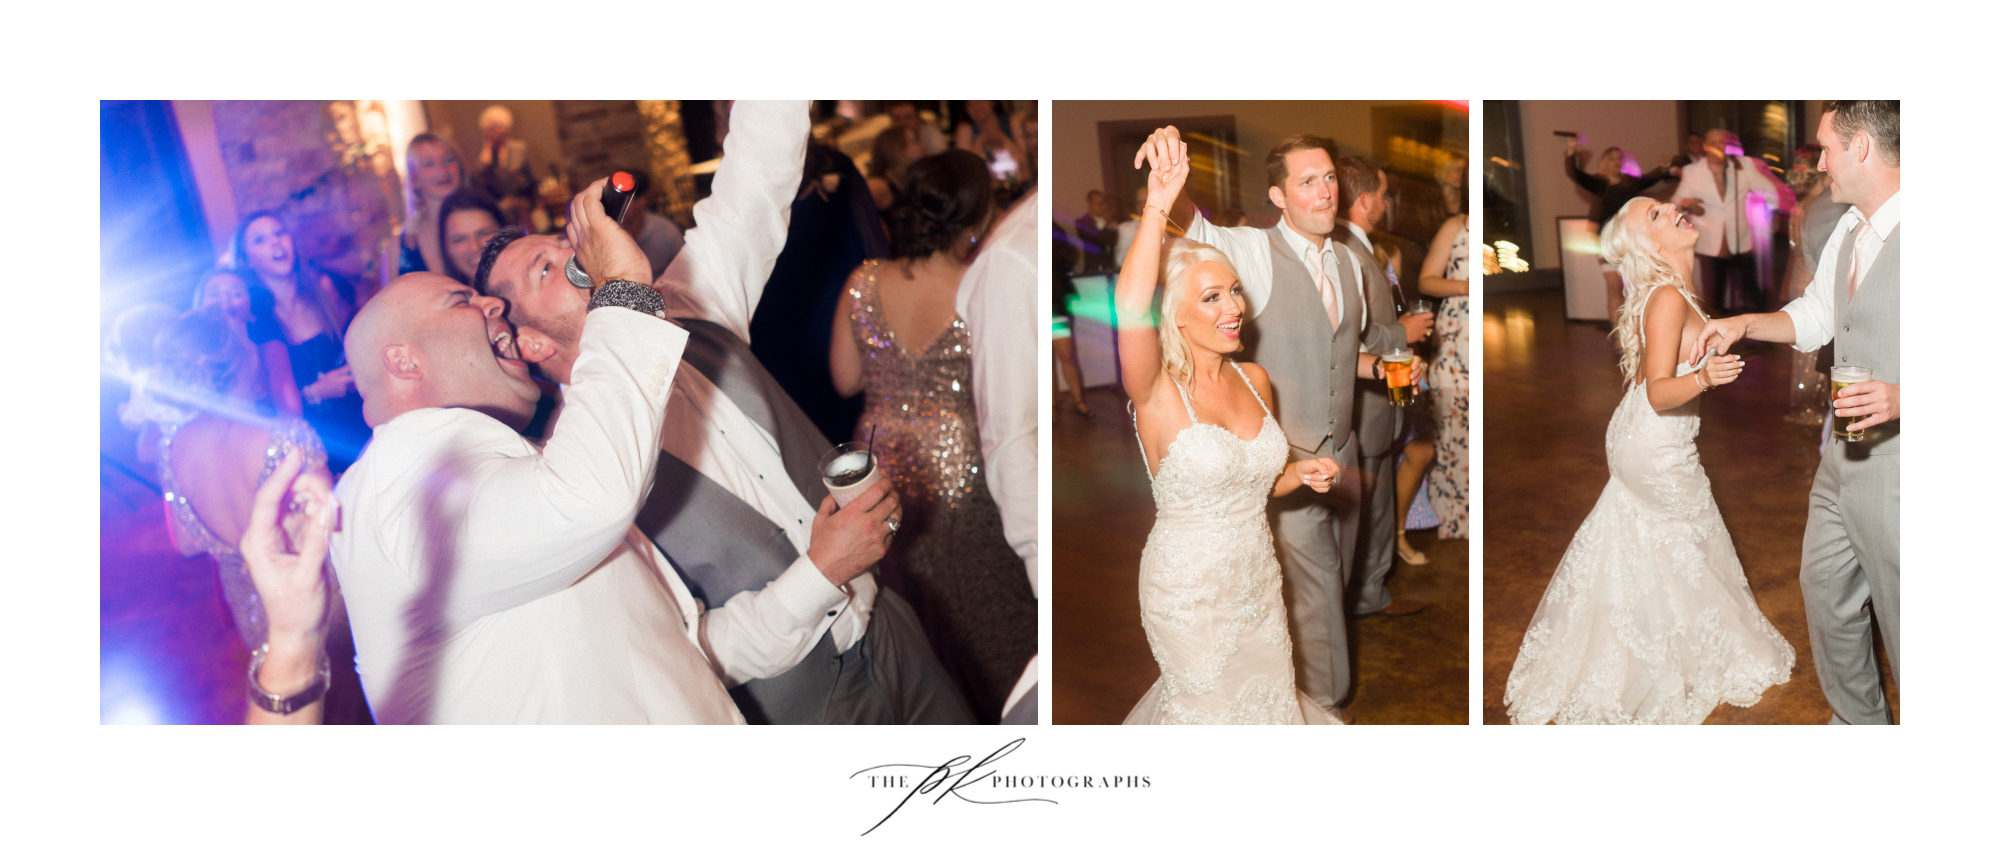 Once that dance floor opened up, the party never ended!  The Lodge At Country Inn Cottages | San Antonio Wedding Photographer